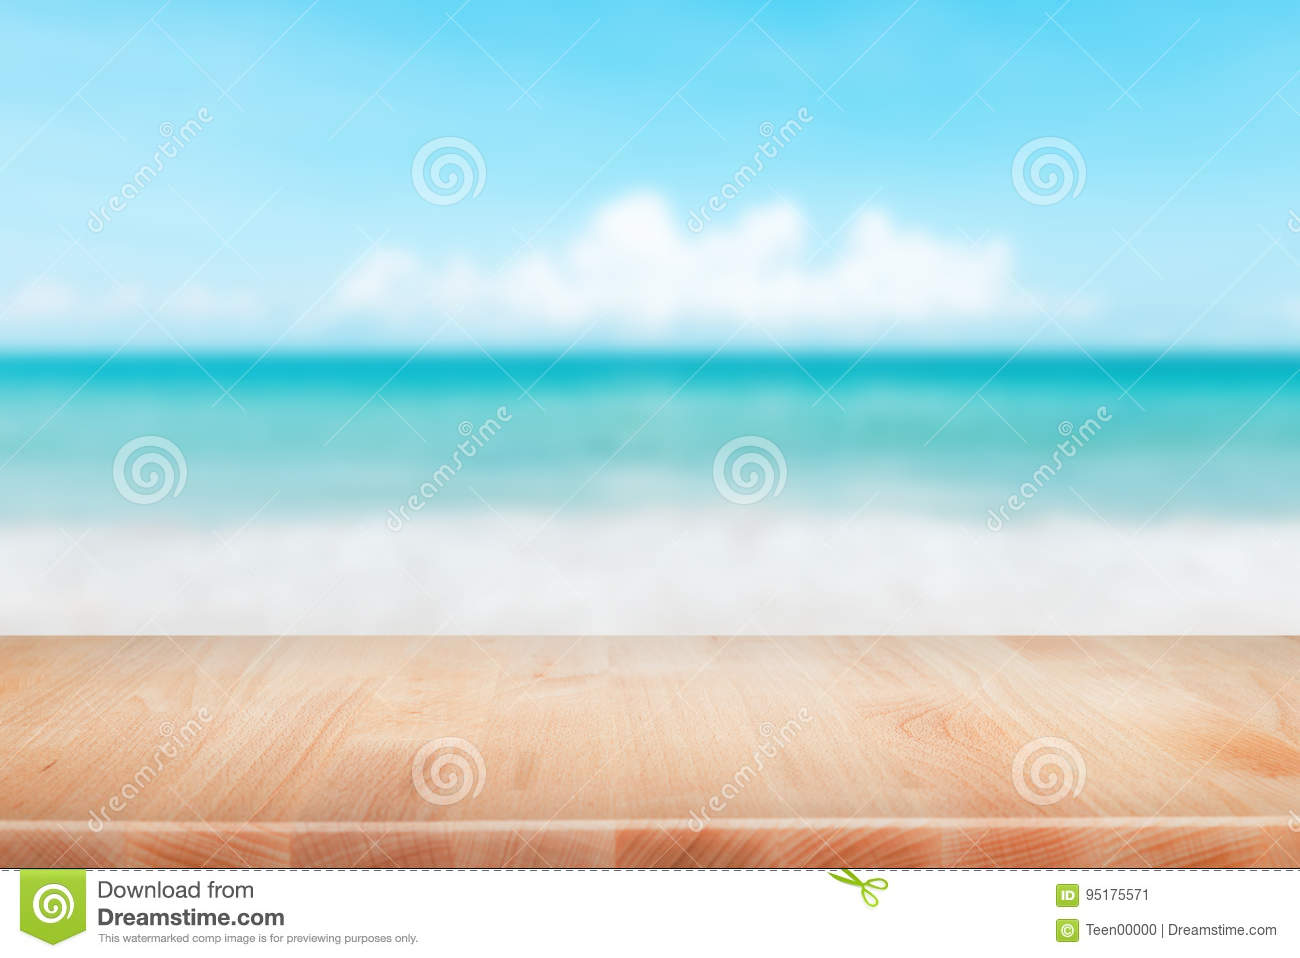 Wood table top on blurred blue sea and white sand beach backgrou